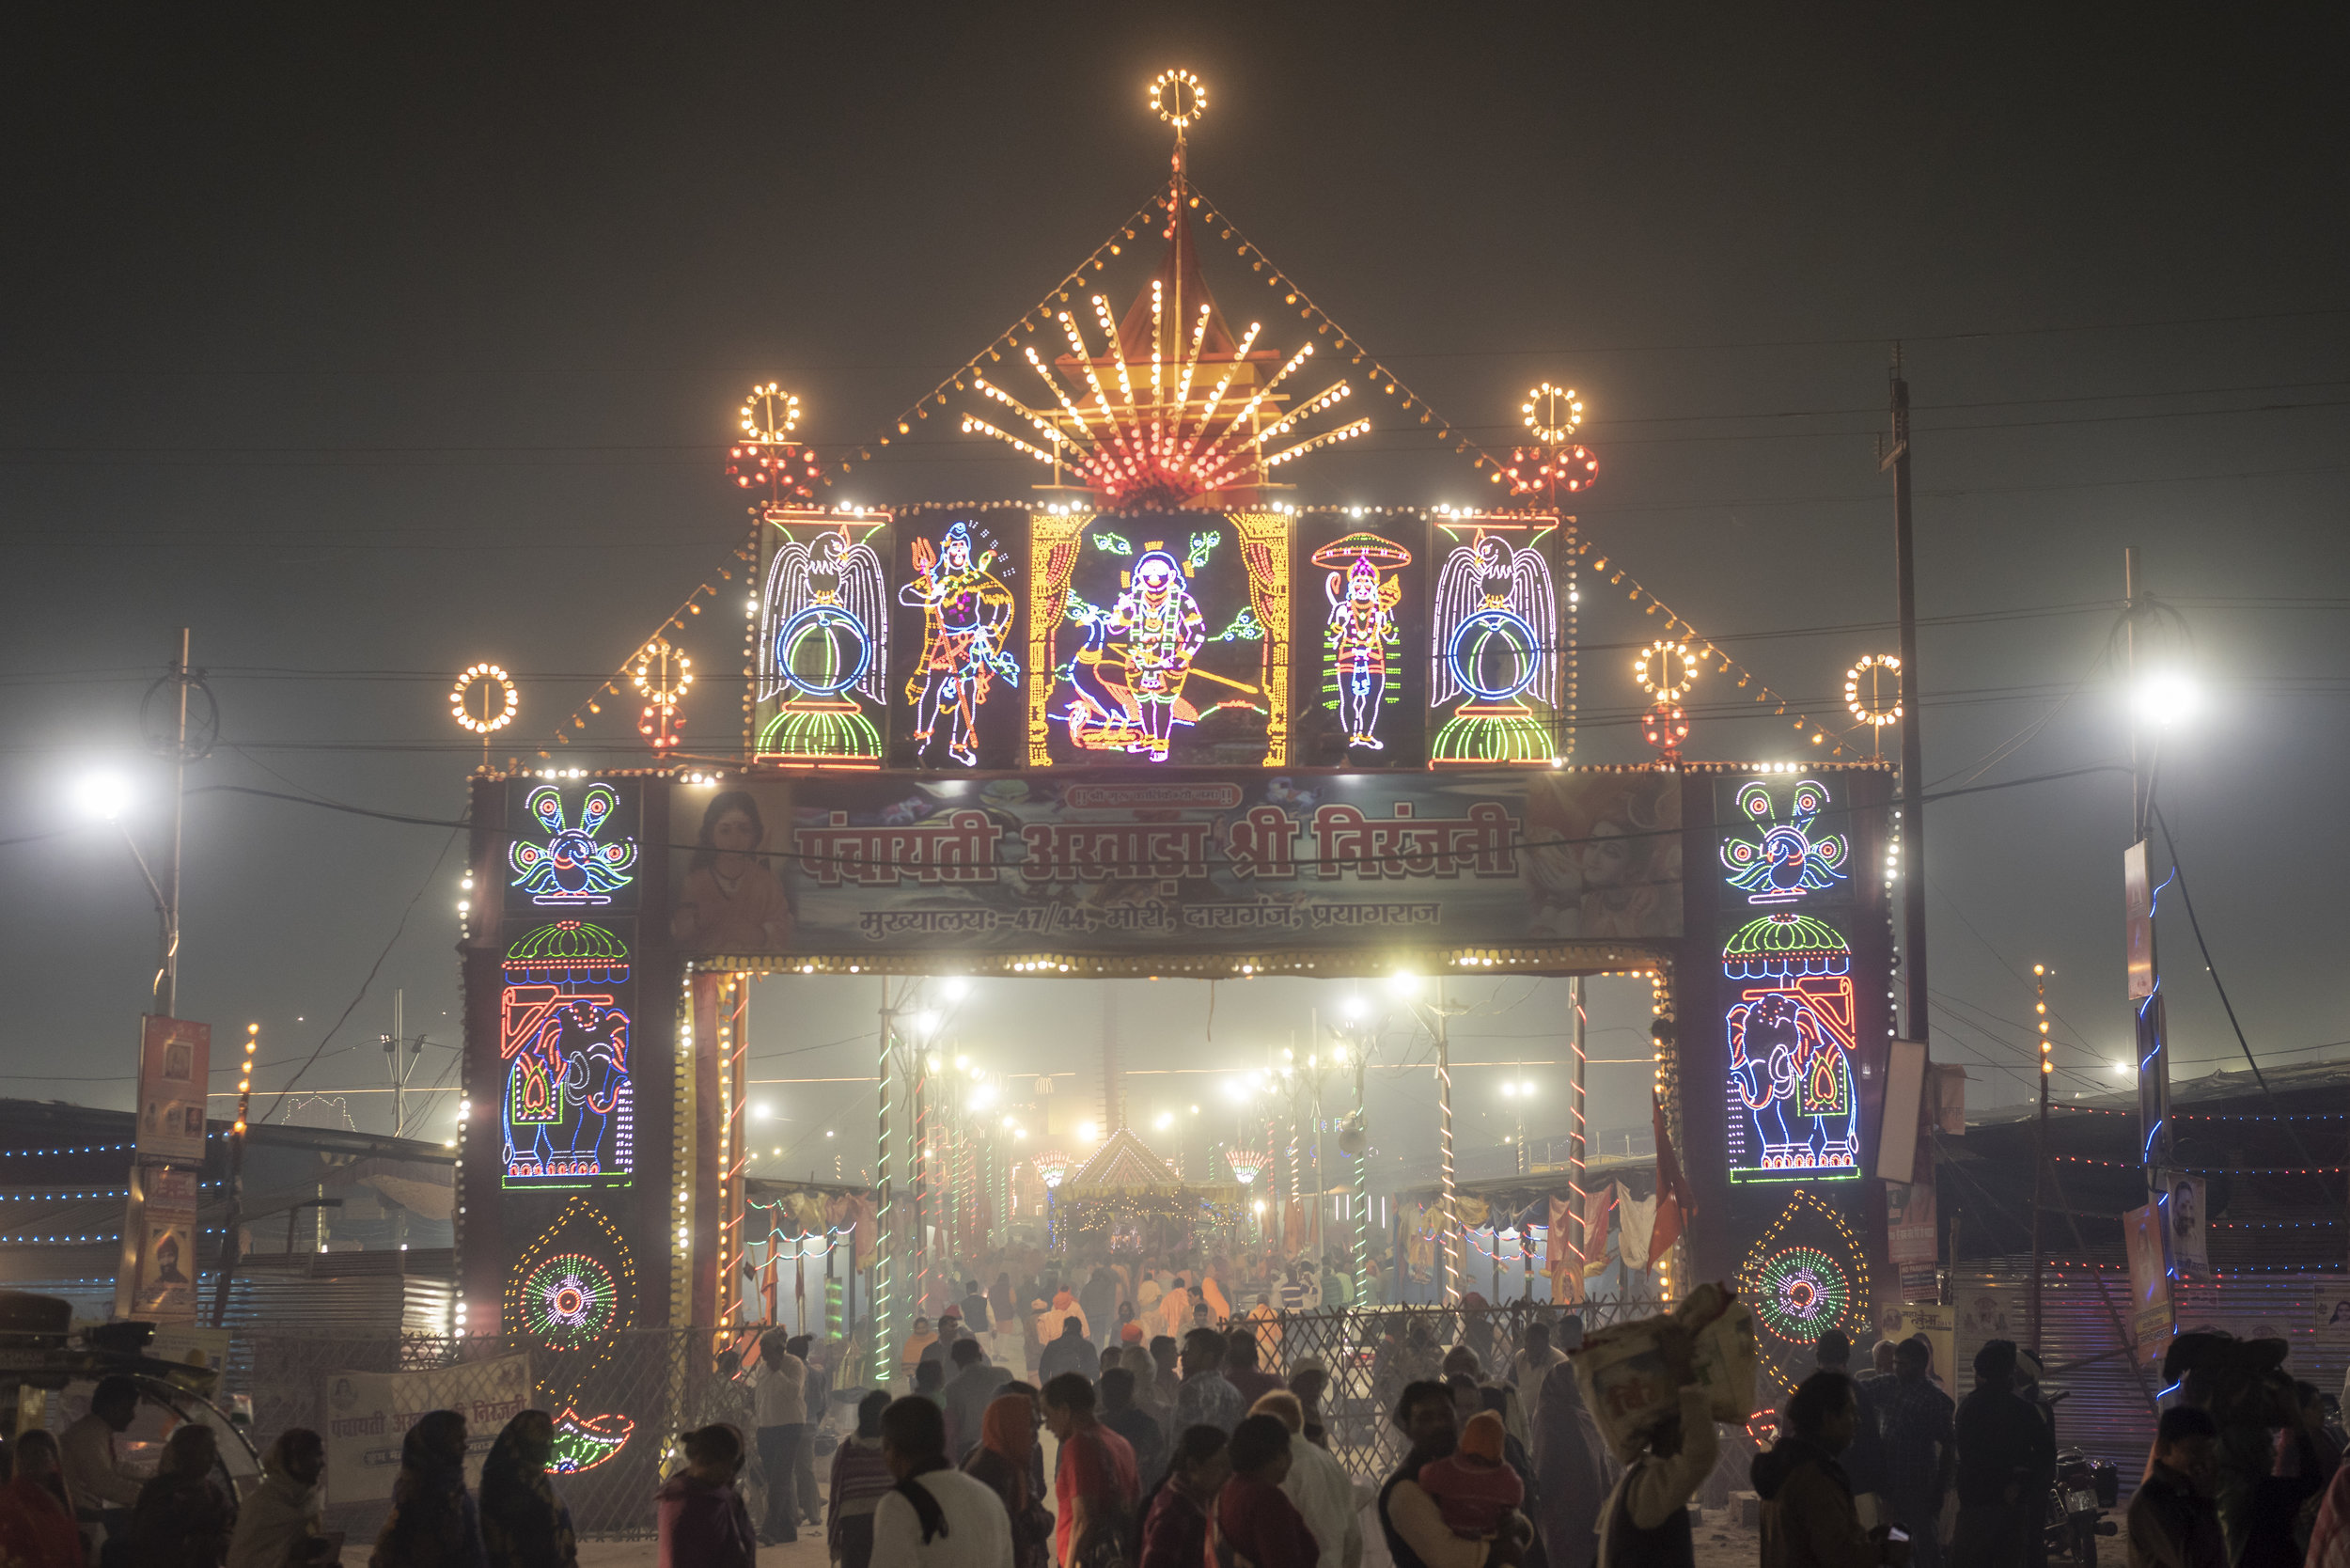 Spectacularly lit entrance to central Mela area